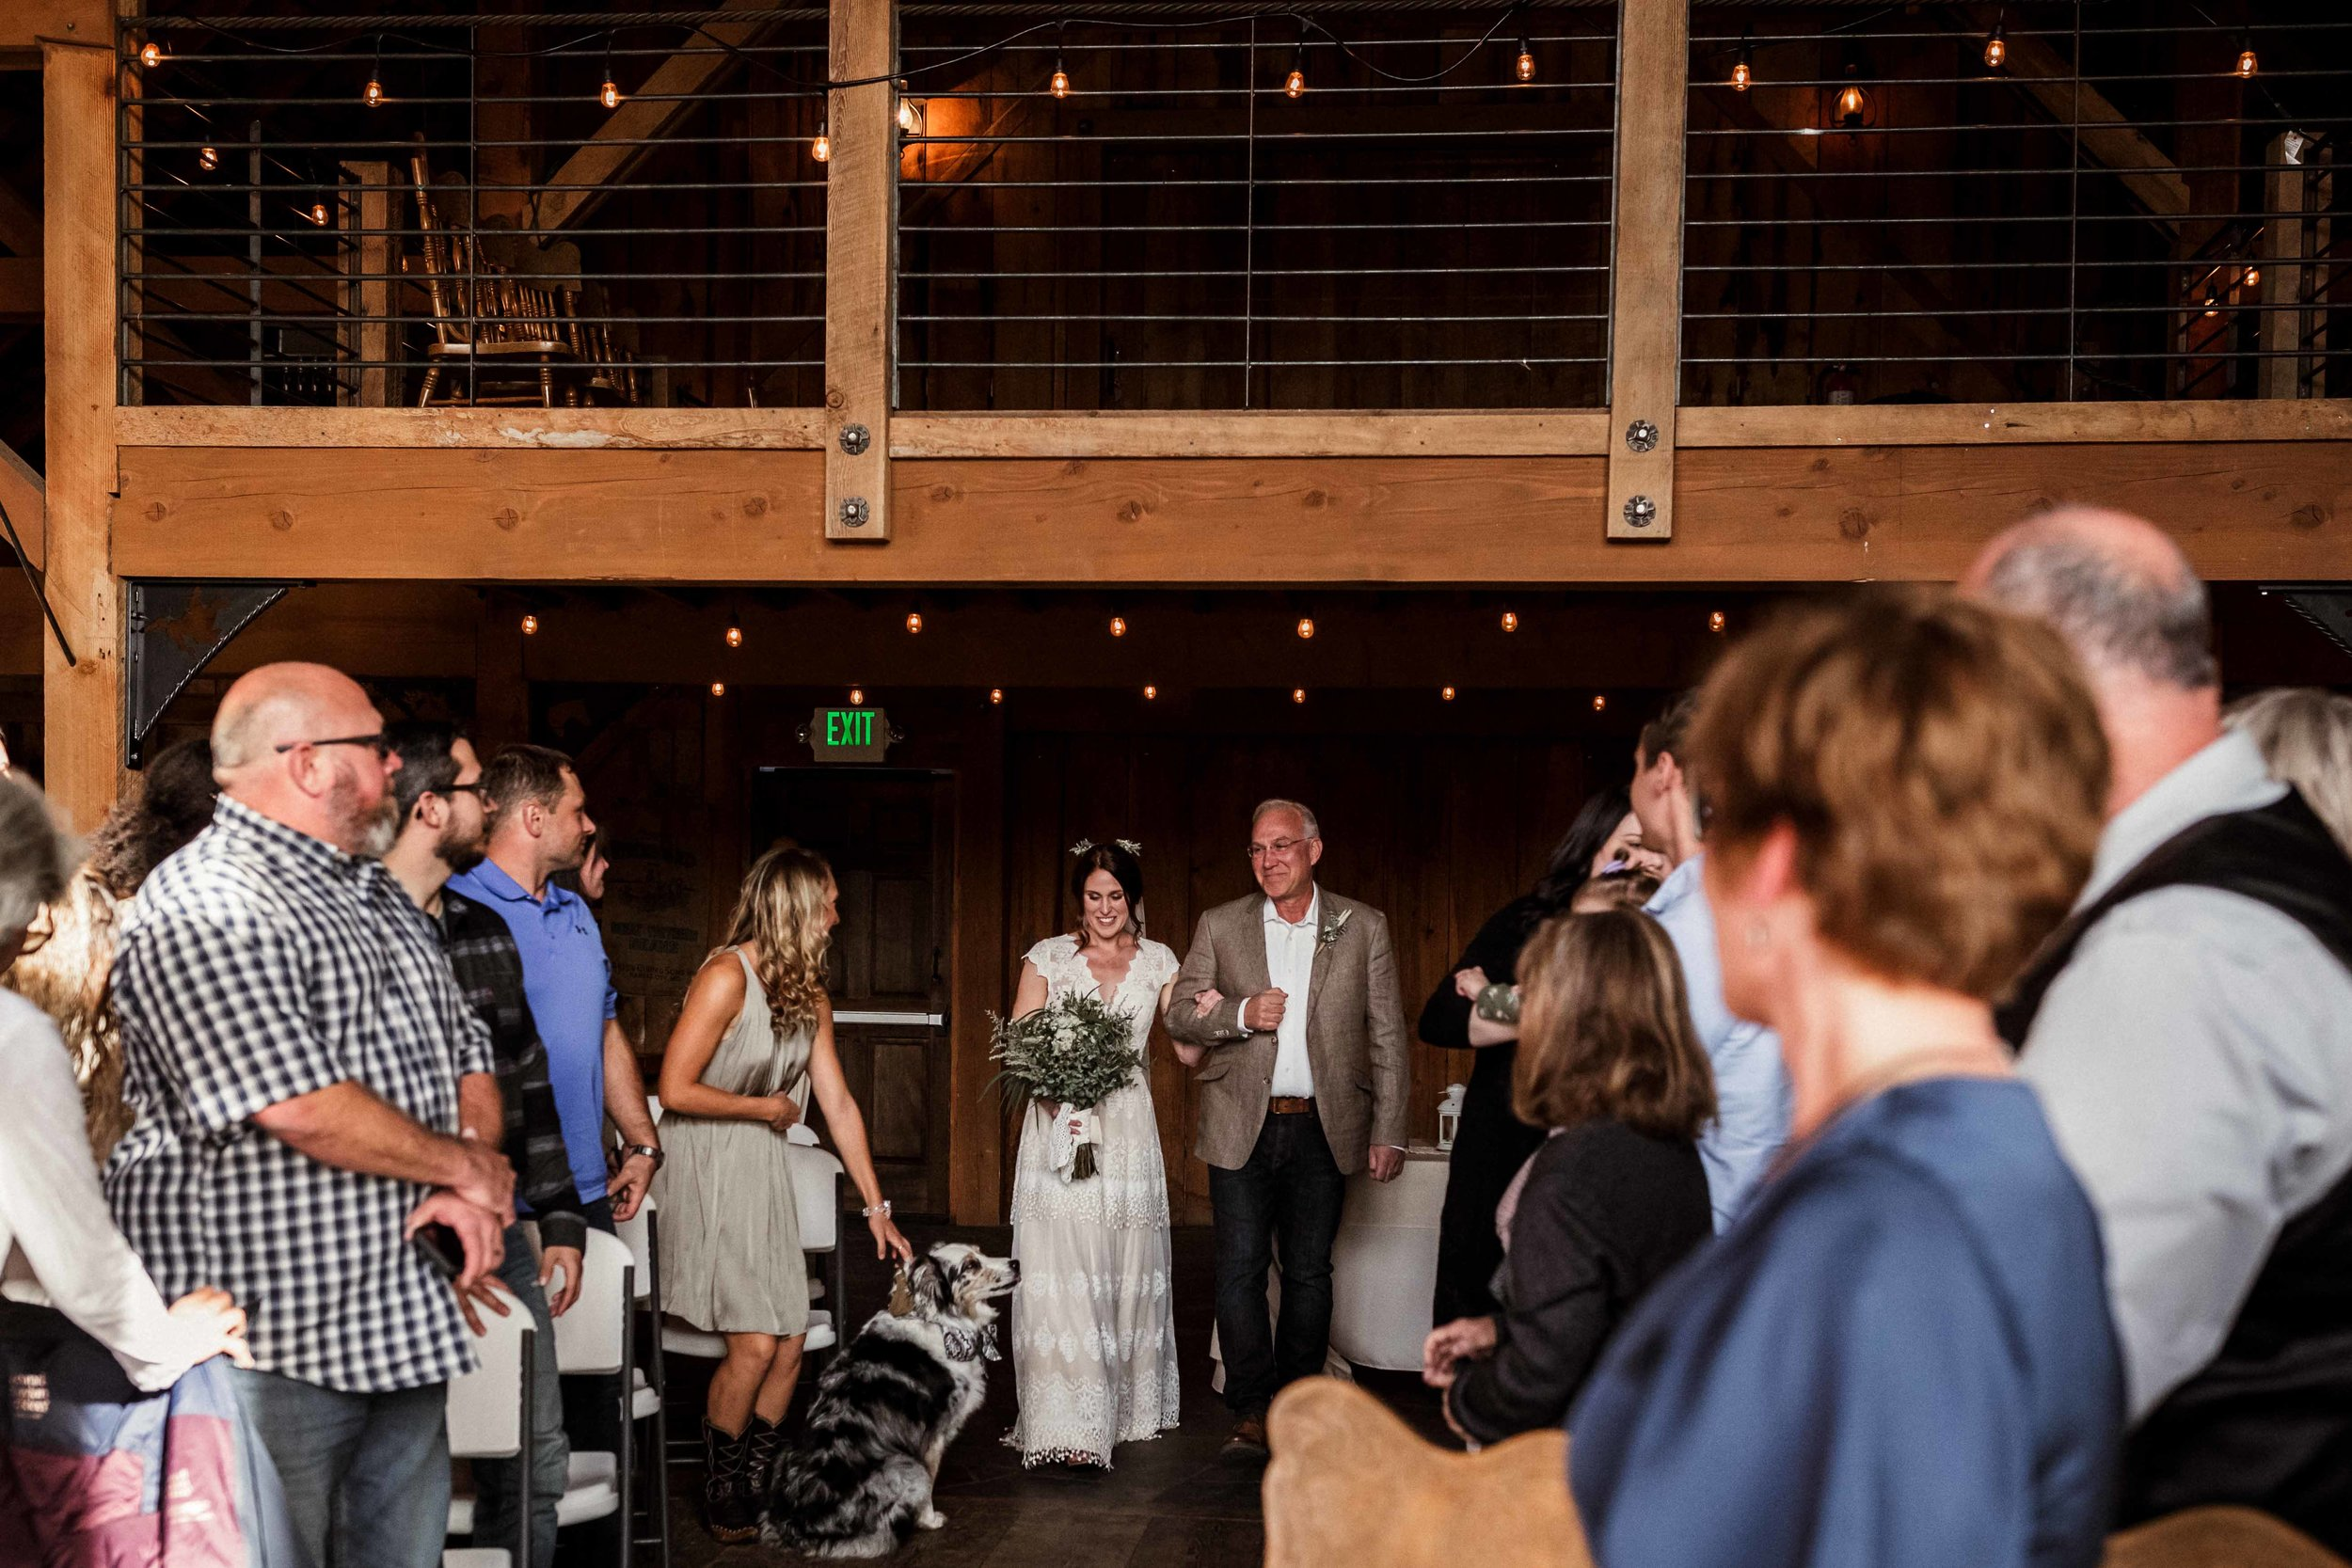 the-cattle-barn-wedding-31.jpg